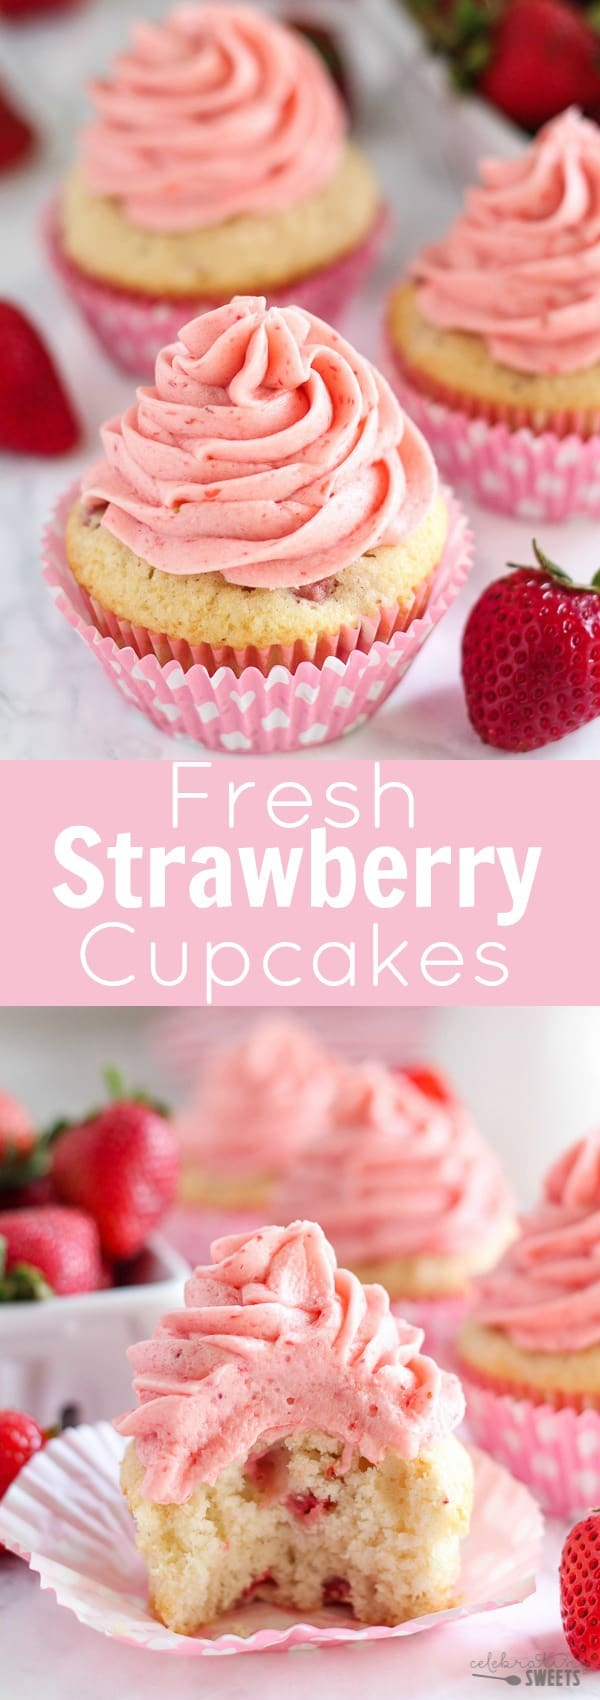 Fresh Strawberry Cupcakes - Moist and tender vanilla cupcakes filled with fresh strawberries and topped with strawberry buttercream.